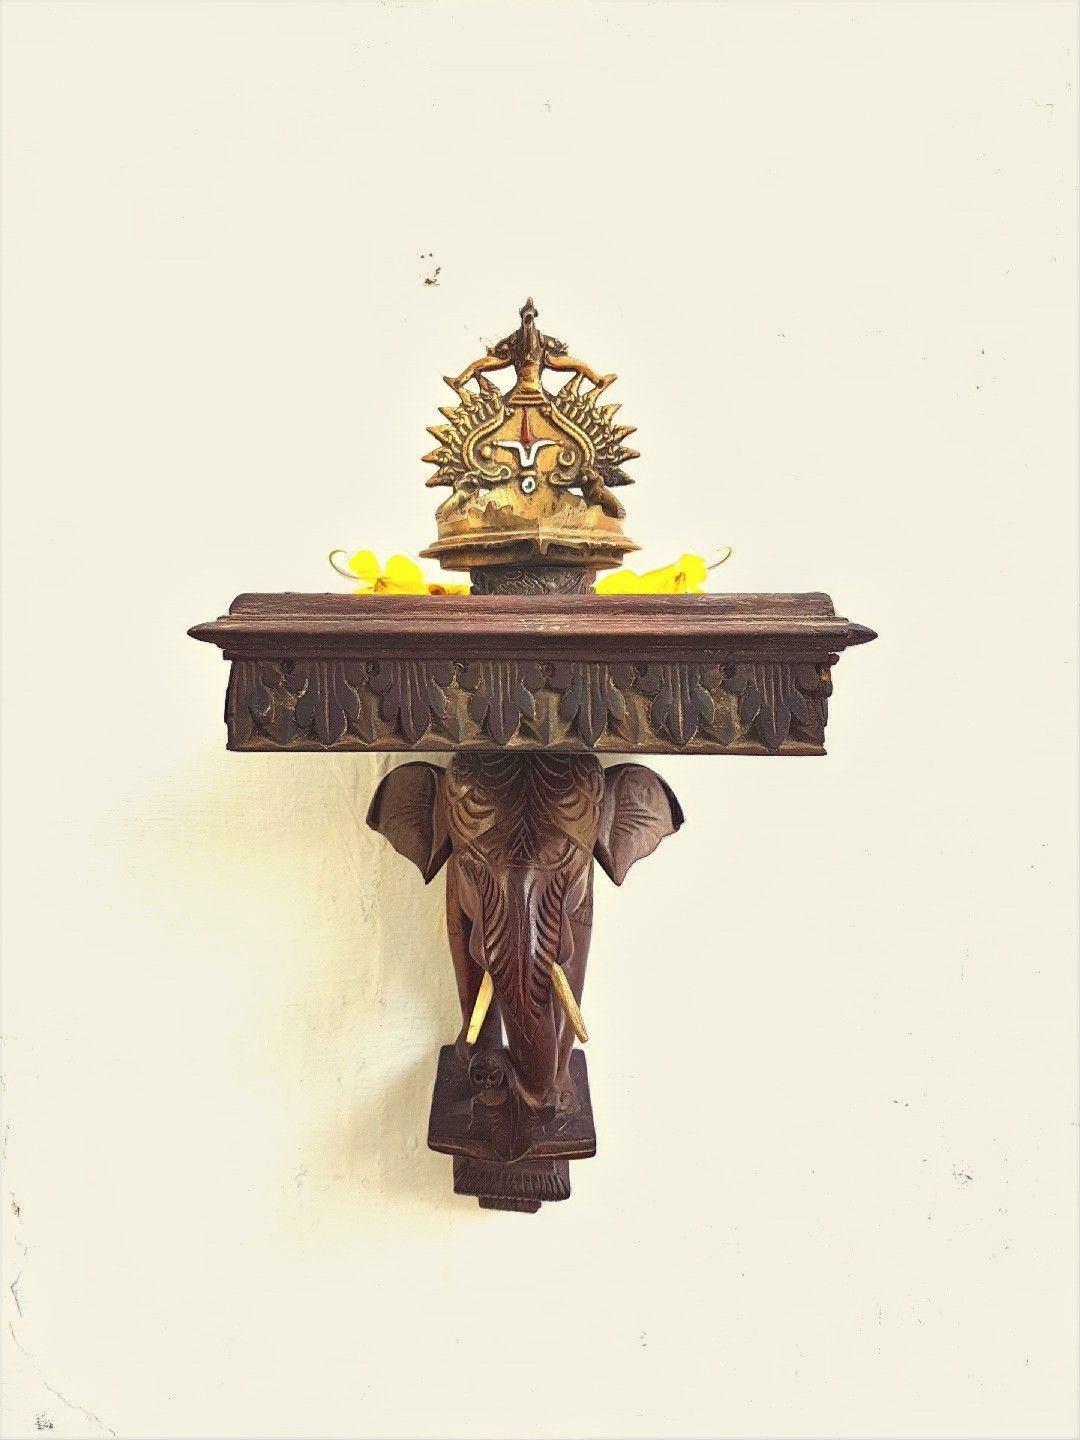 Pooja Room Door Carving Designs Google Search: Elephant Wall Mount Wooden.....Follow @ Instagram.com